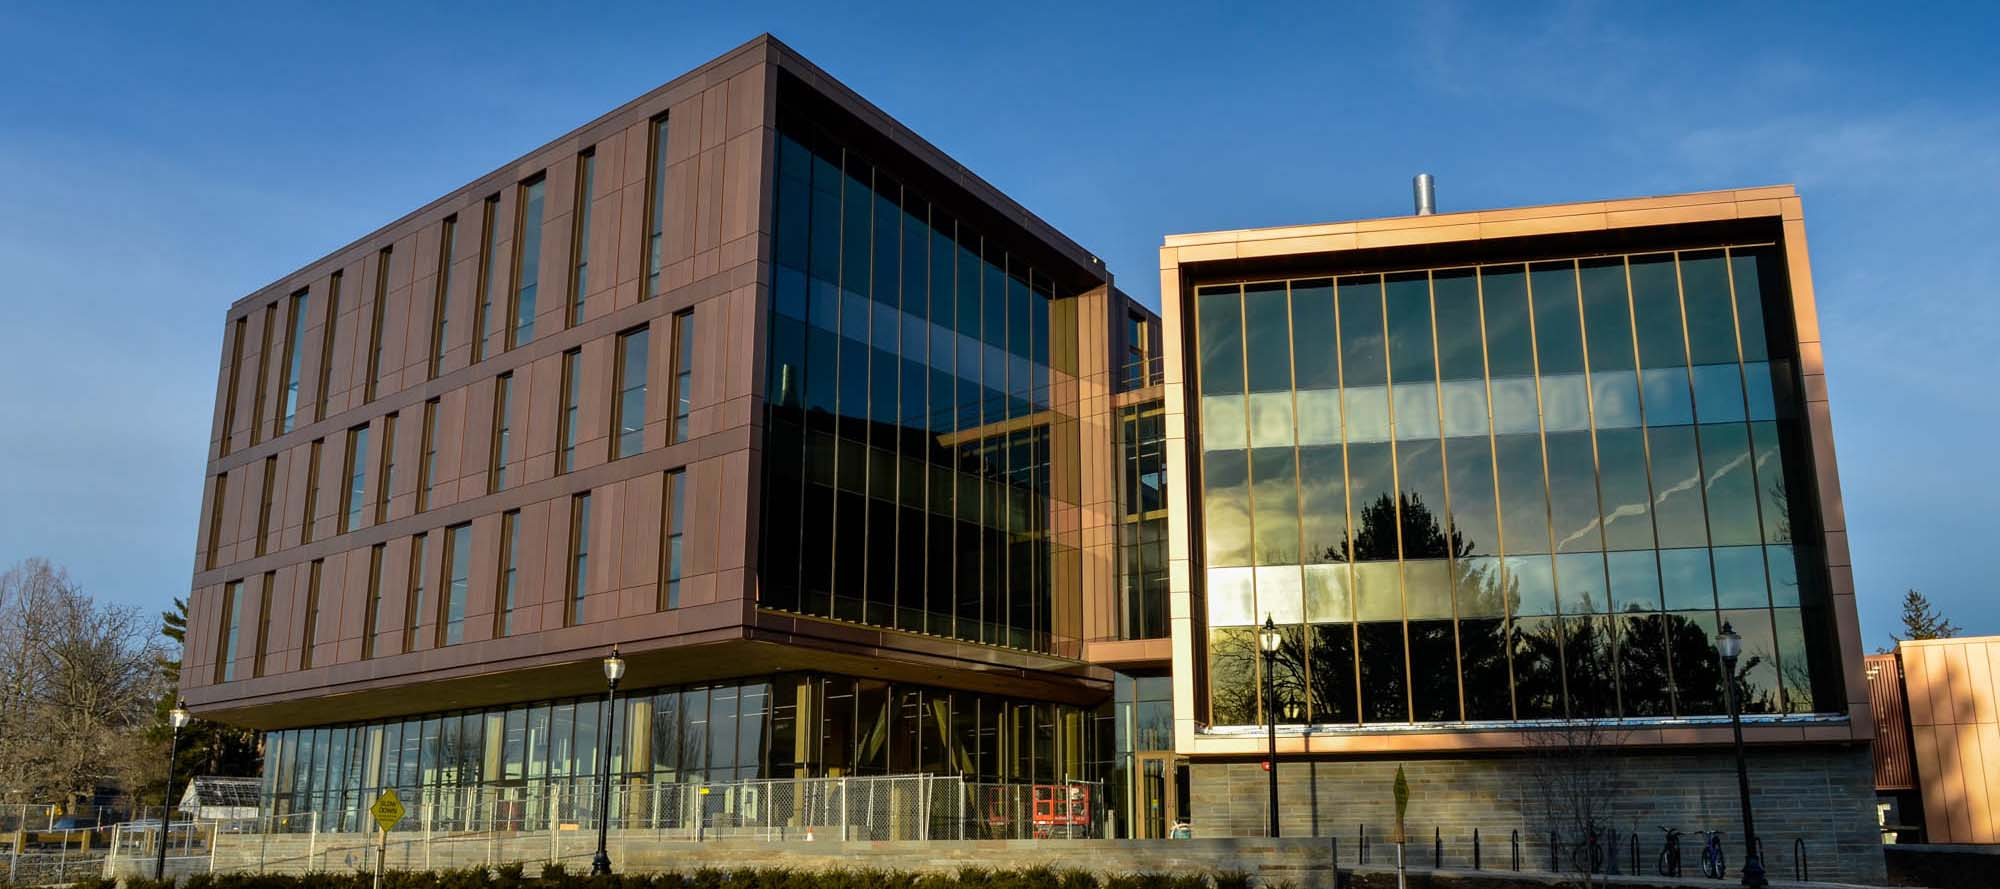 The john w olver design building at umass amherst for Design a building